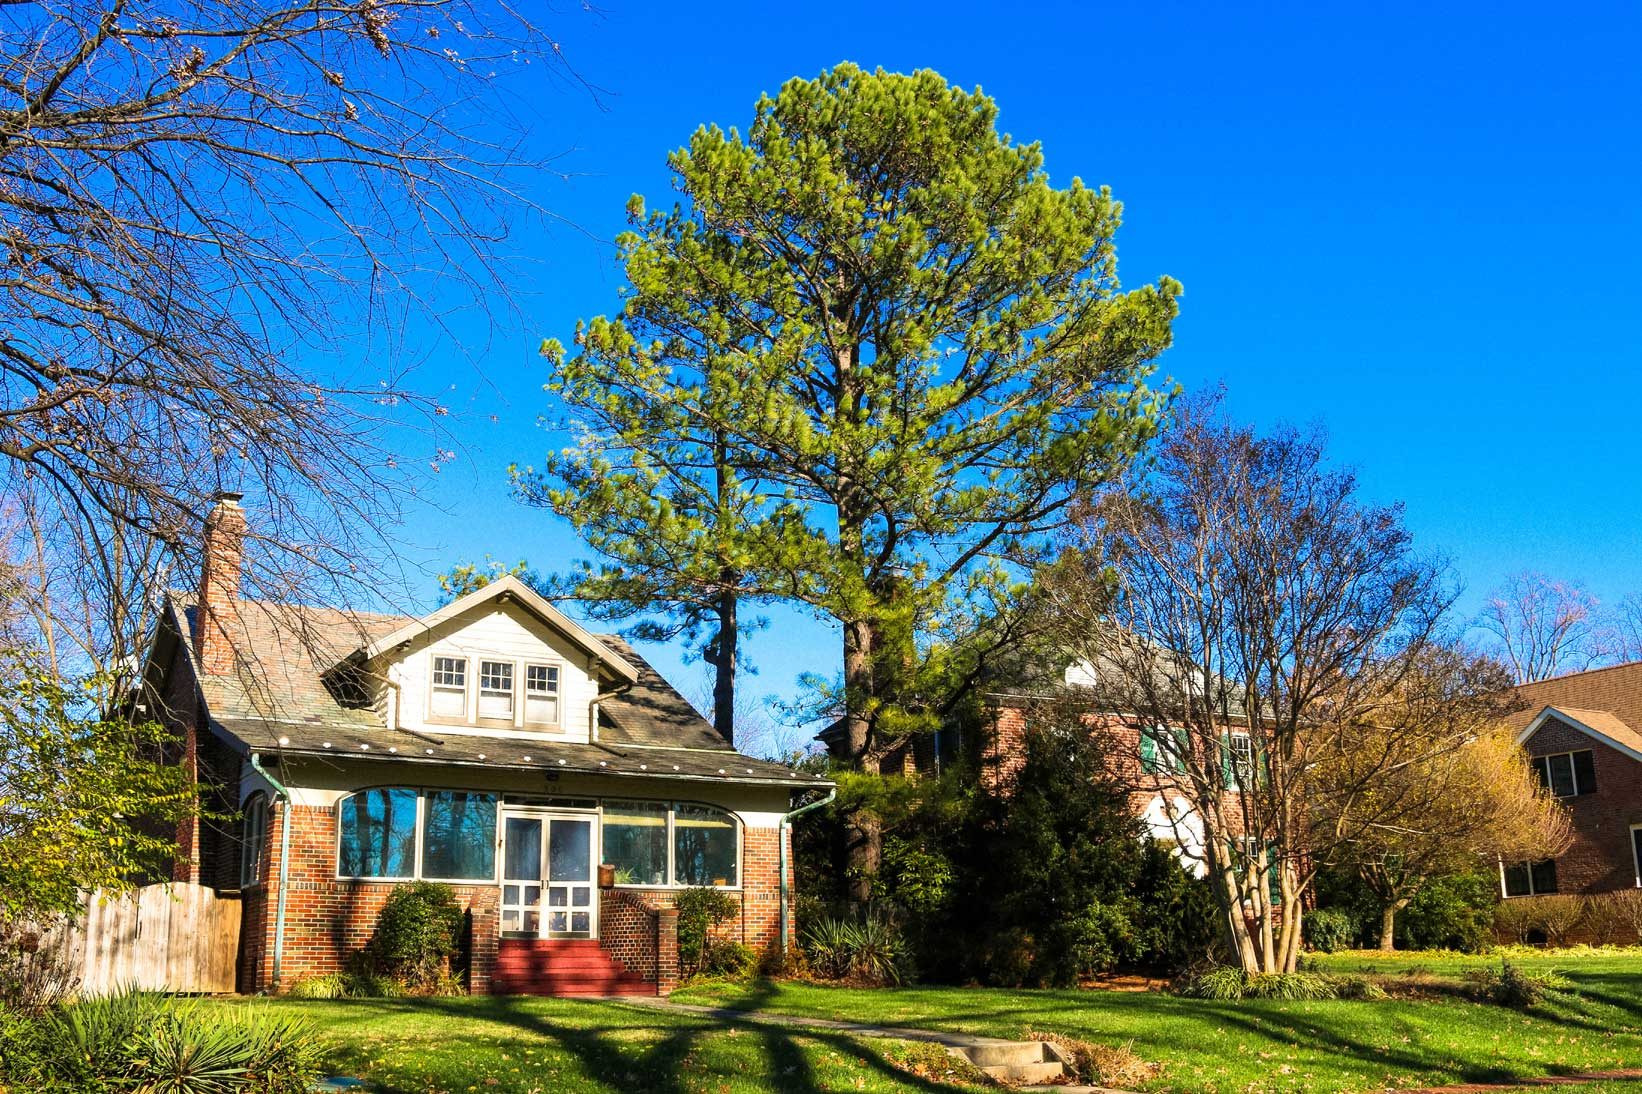 Single family home with tree in Rockville, MD